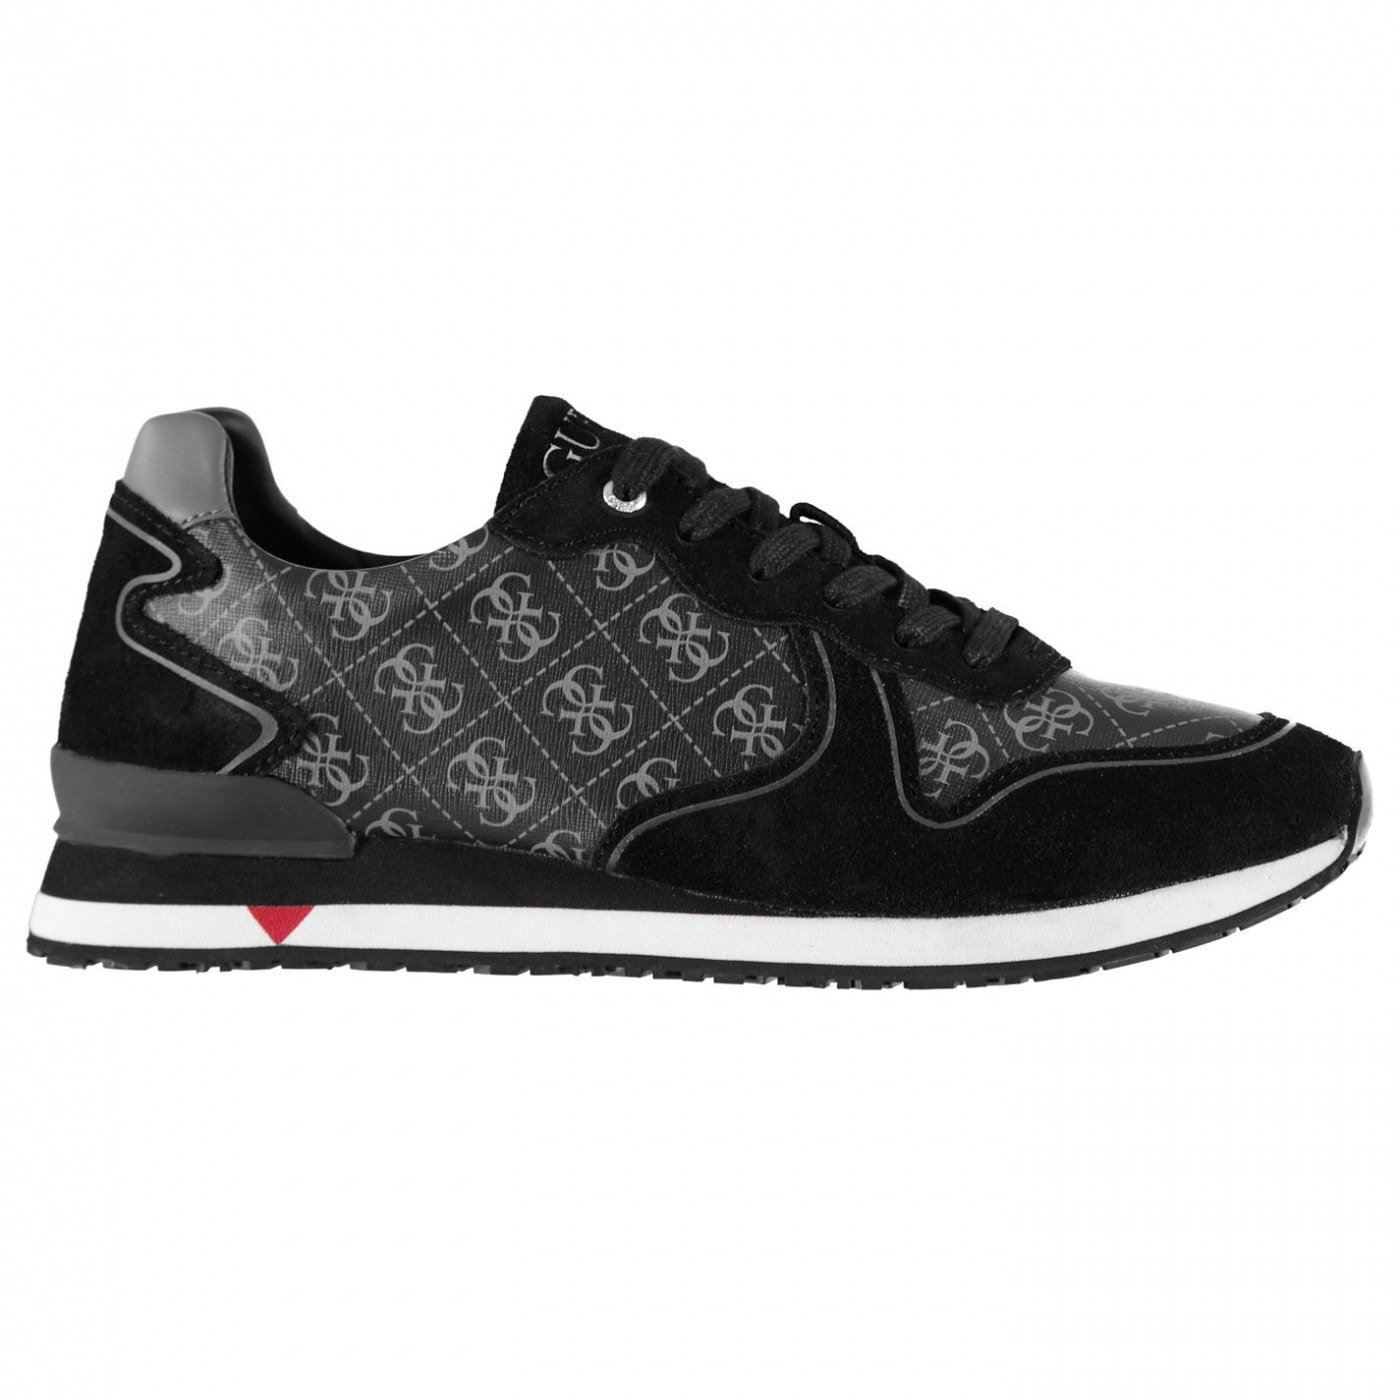 Guess New Glory Men's Trainers